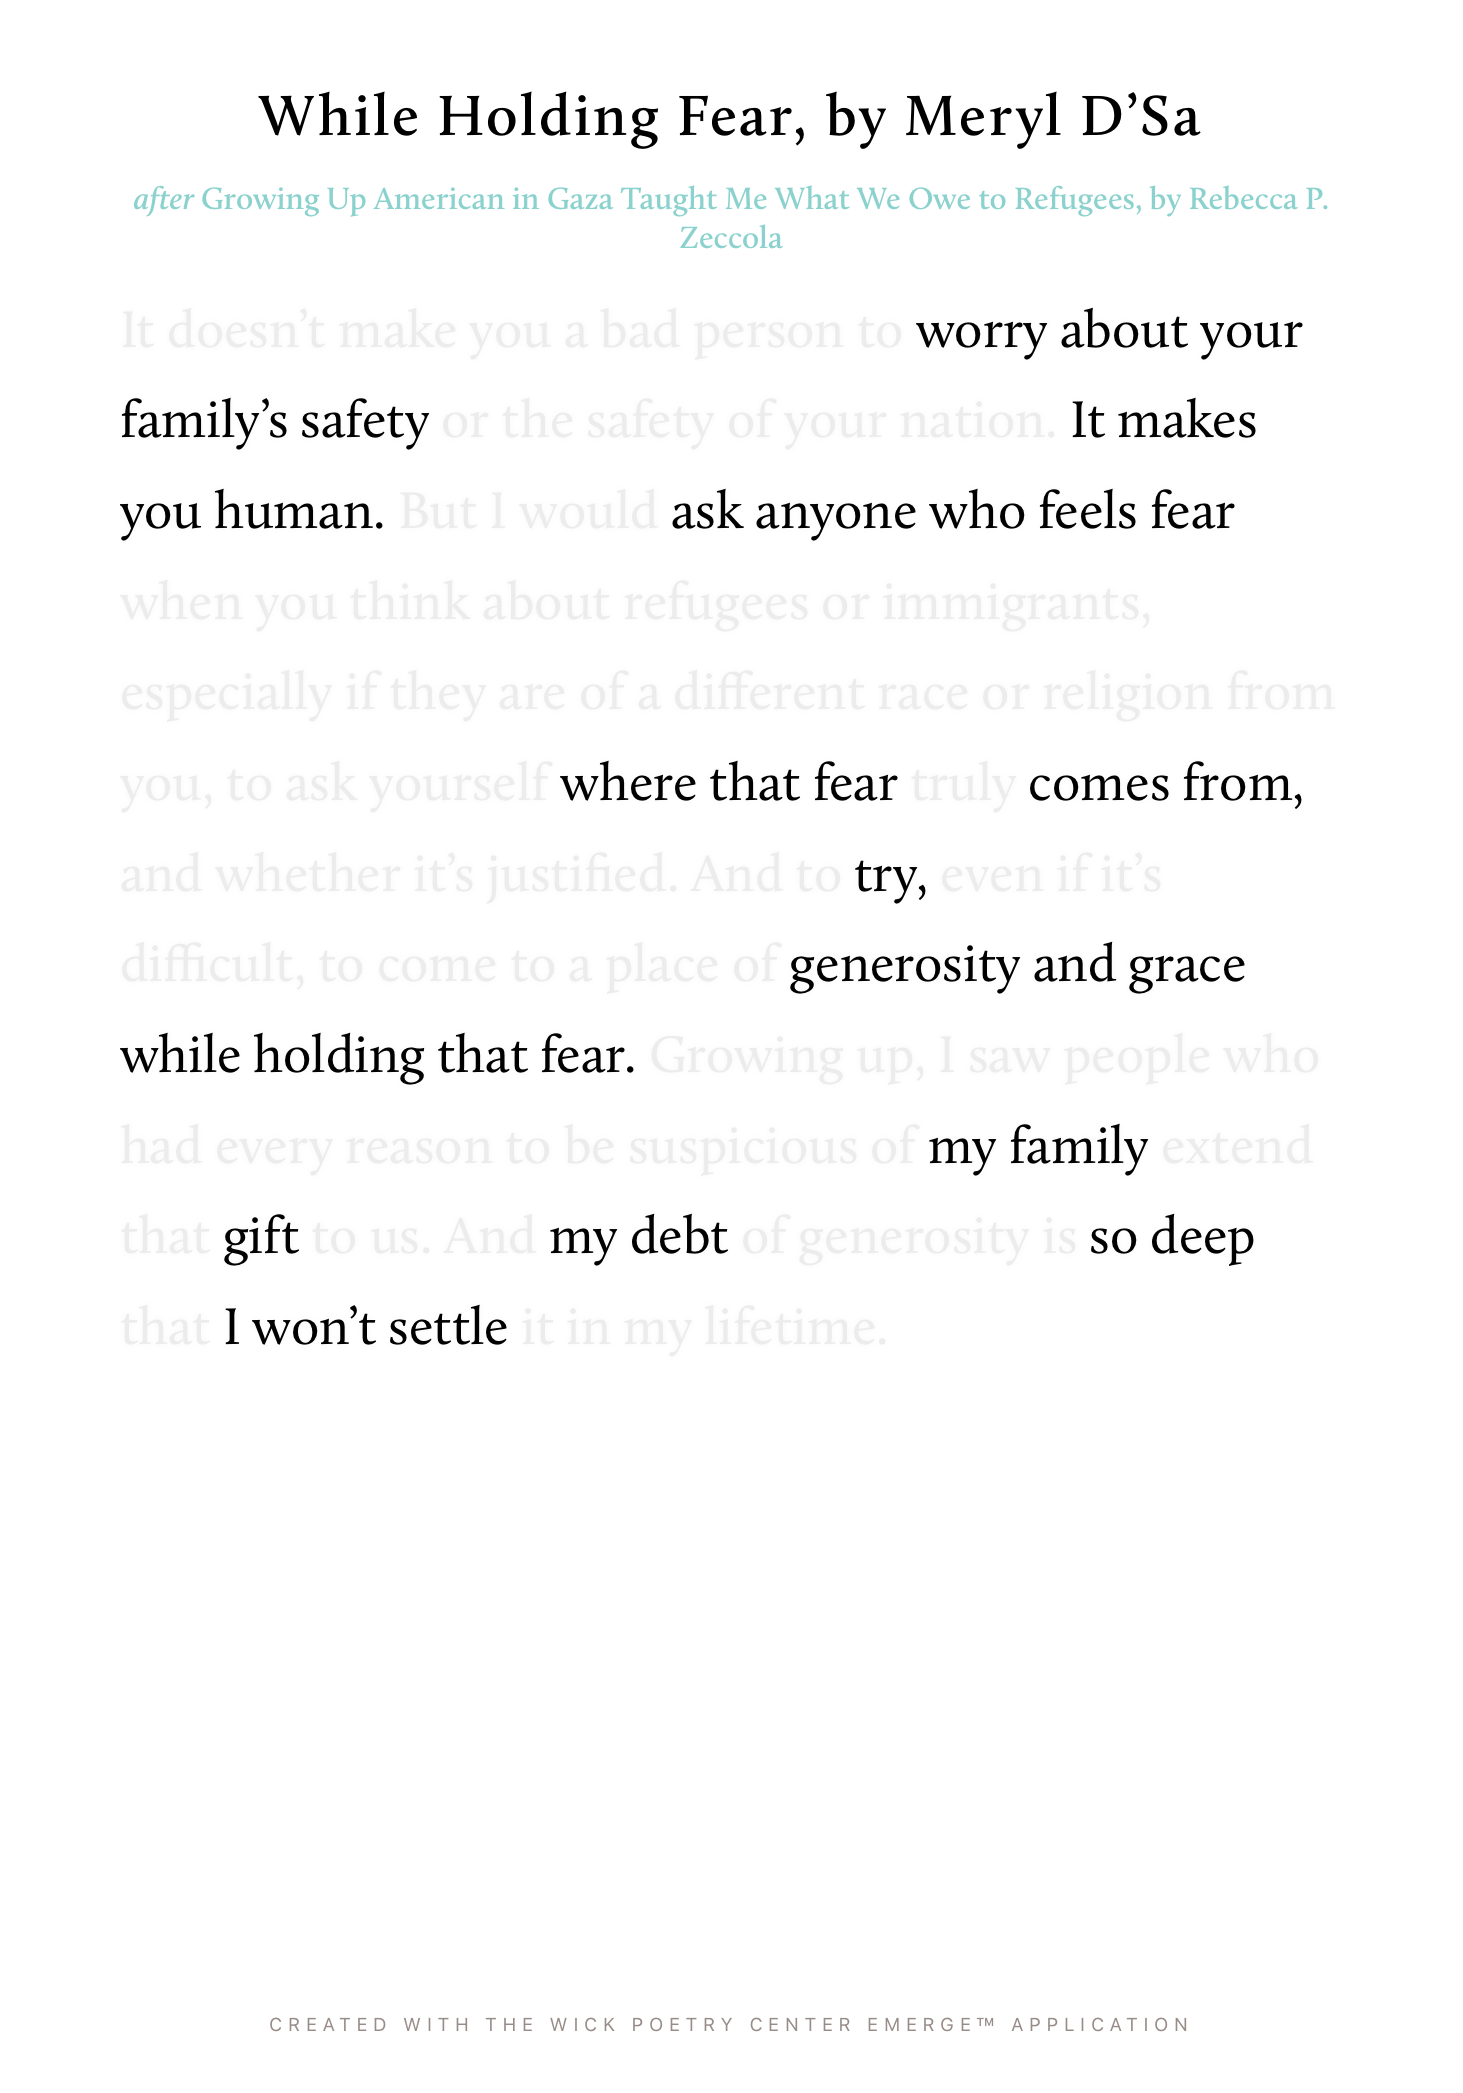 While Holding Fear